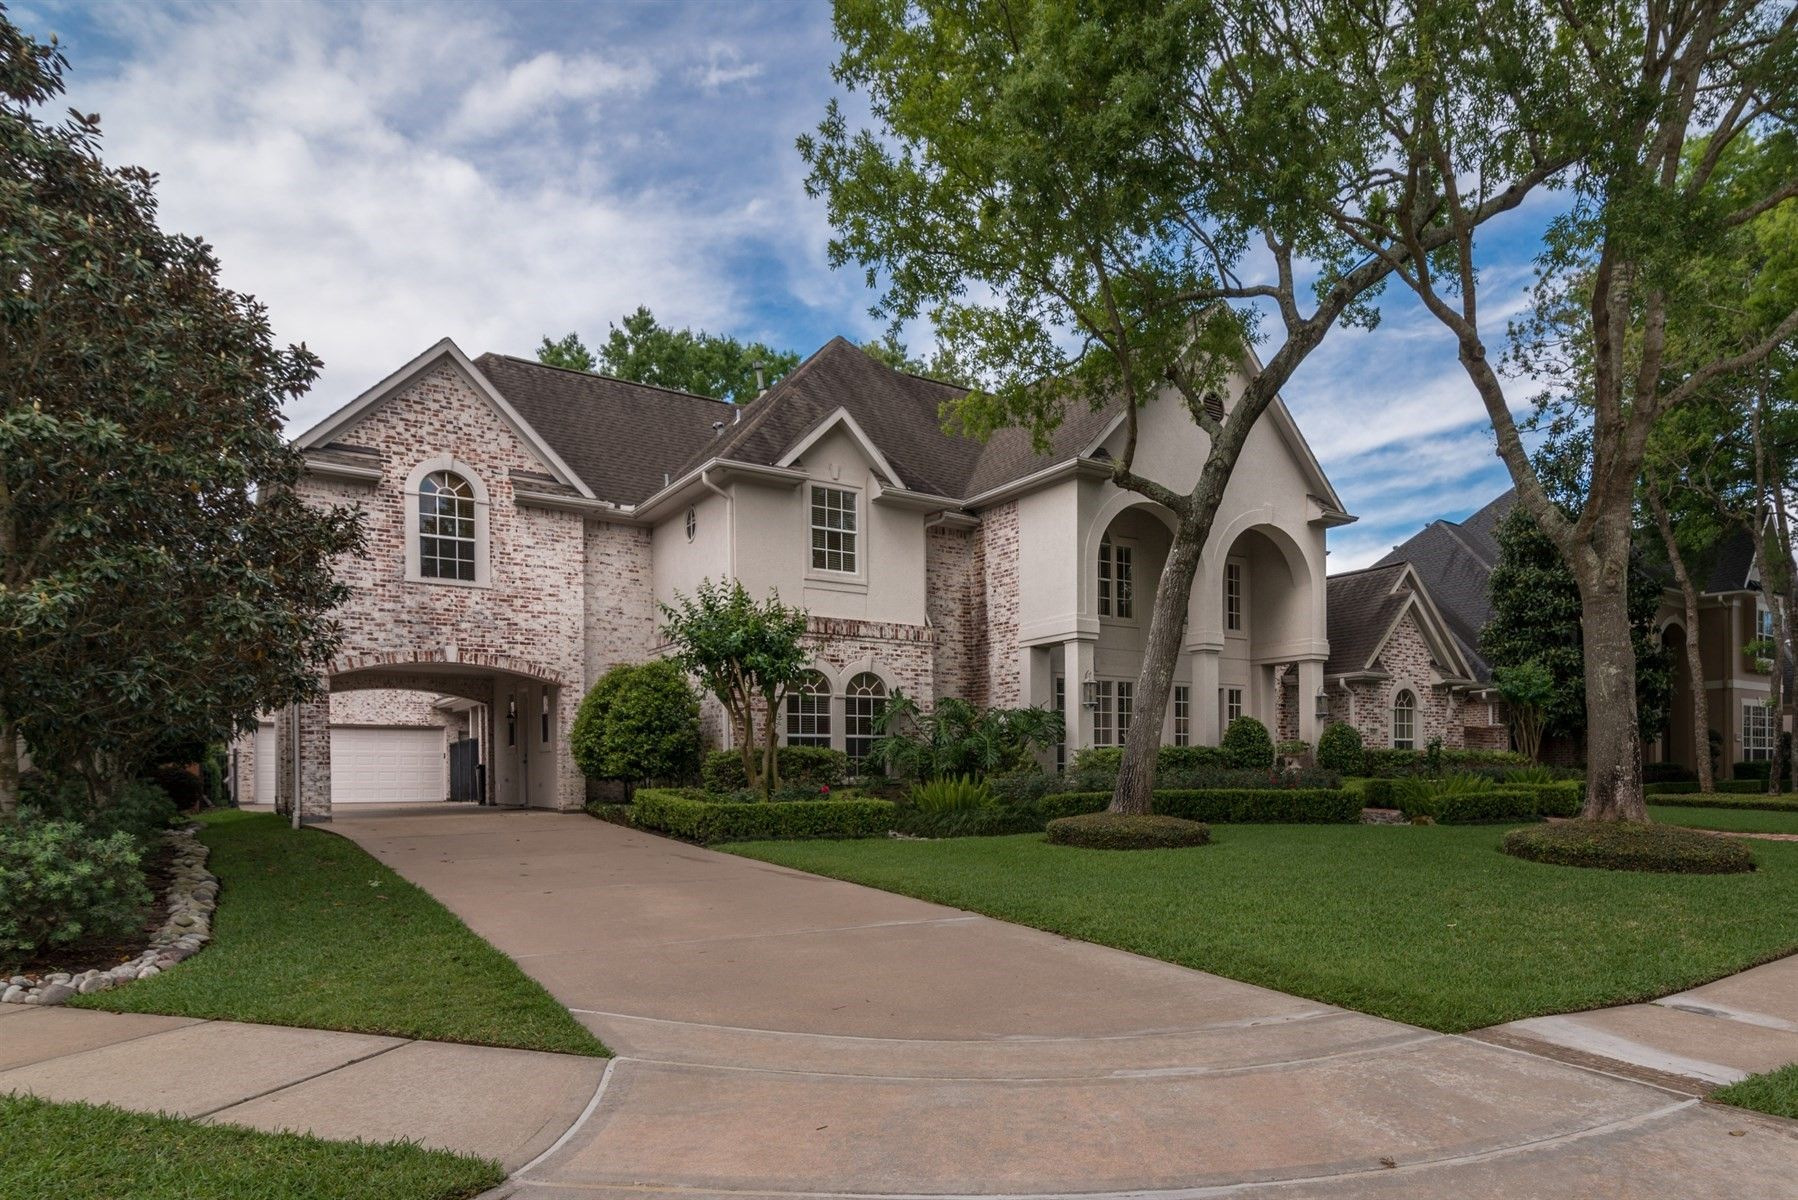 775 000 5 Beds 4 5 Baths 4582 Sq Ft Contact Dan Mccarver Better Homes And Gardens Real